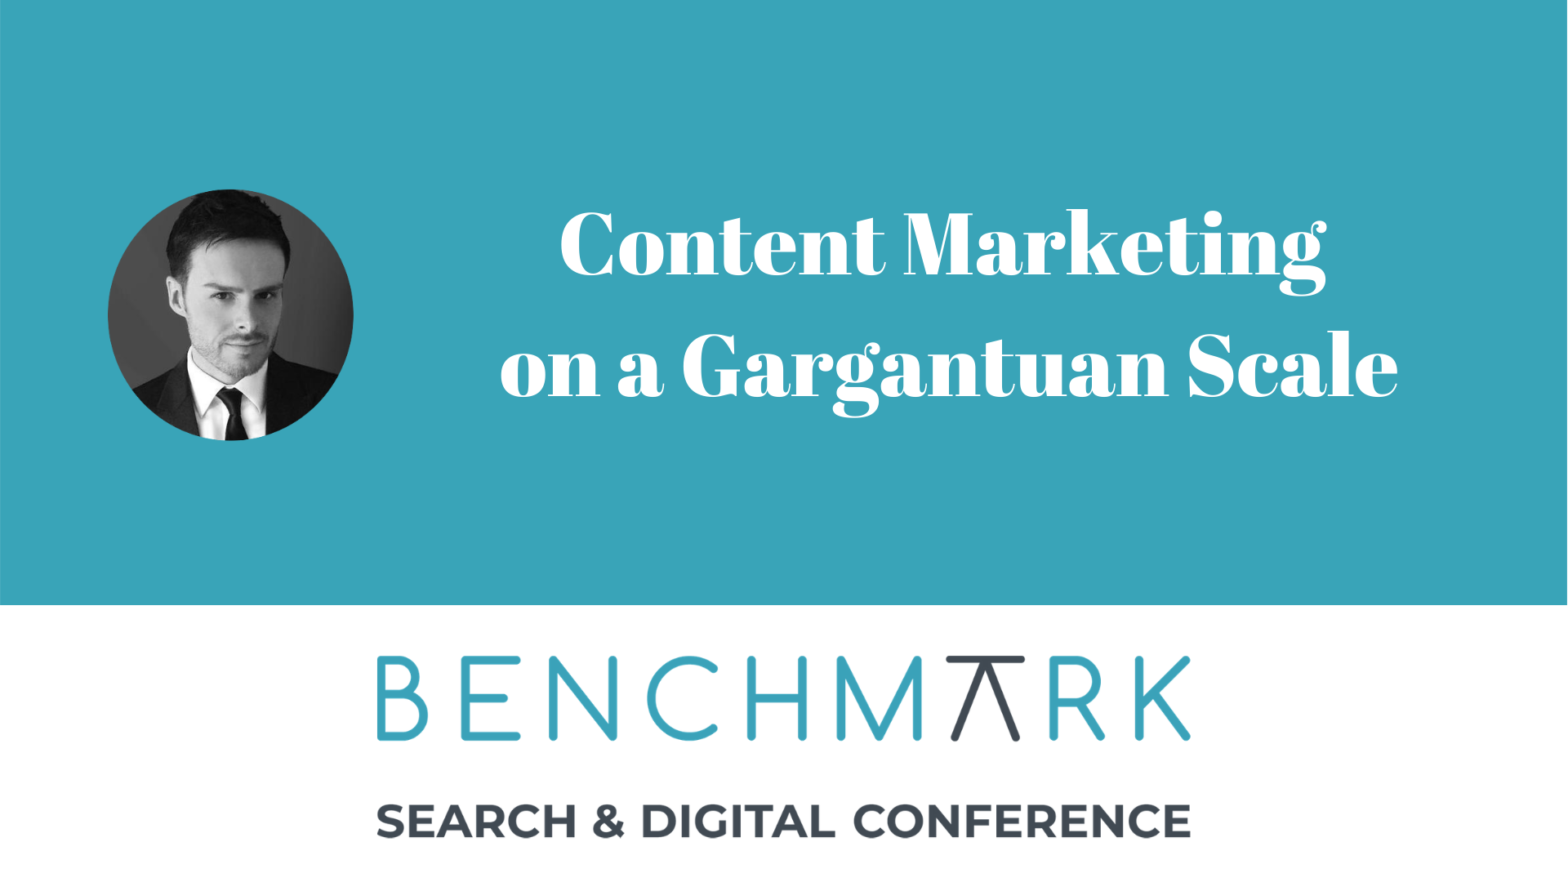 Content Marketing on a Gargantuan Scale